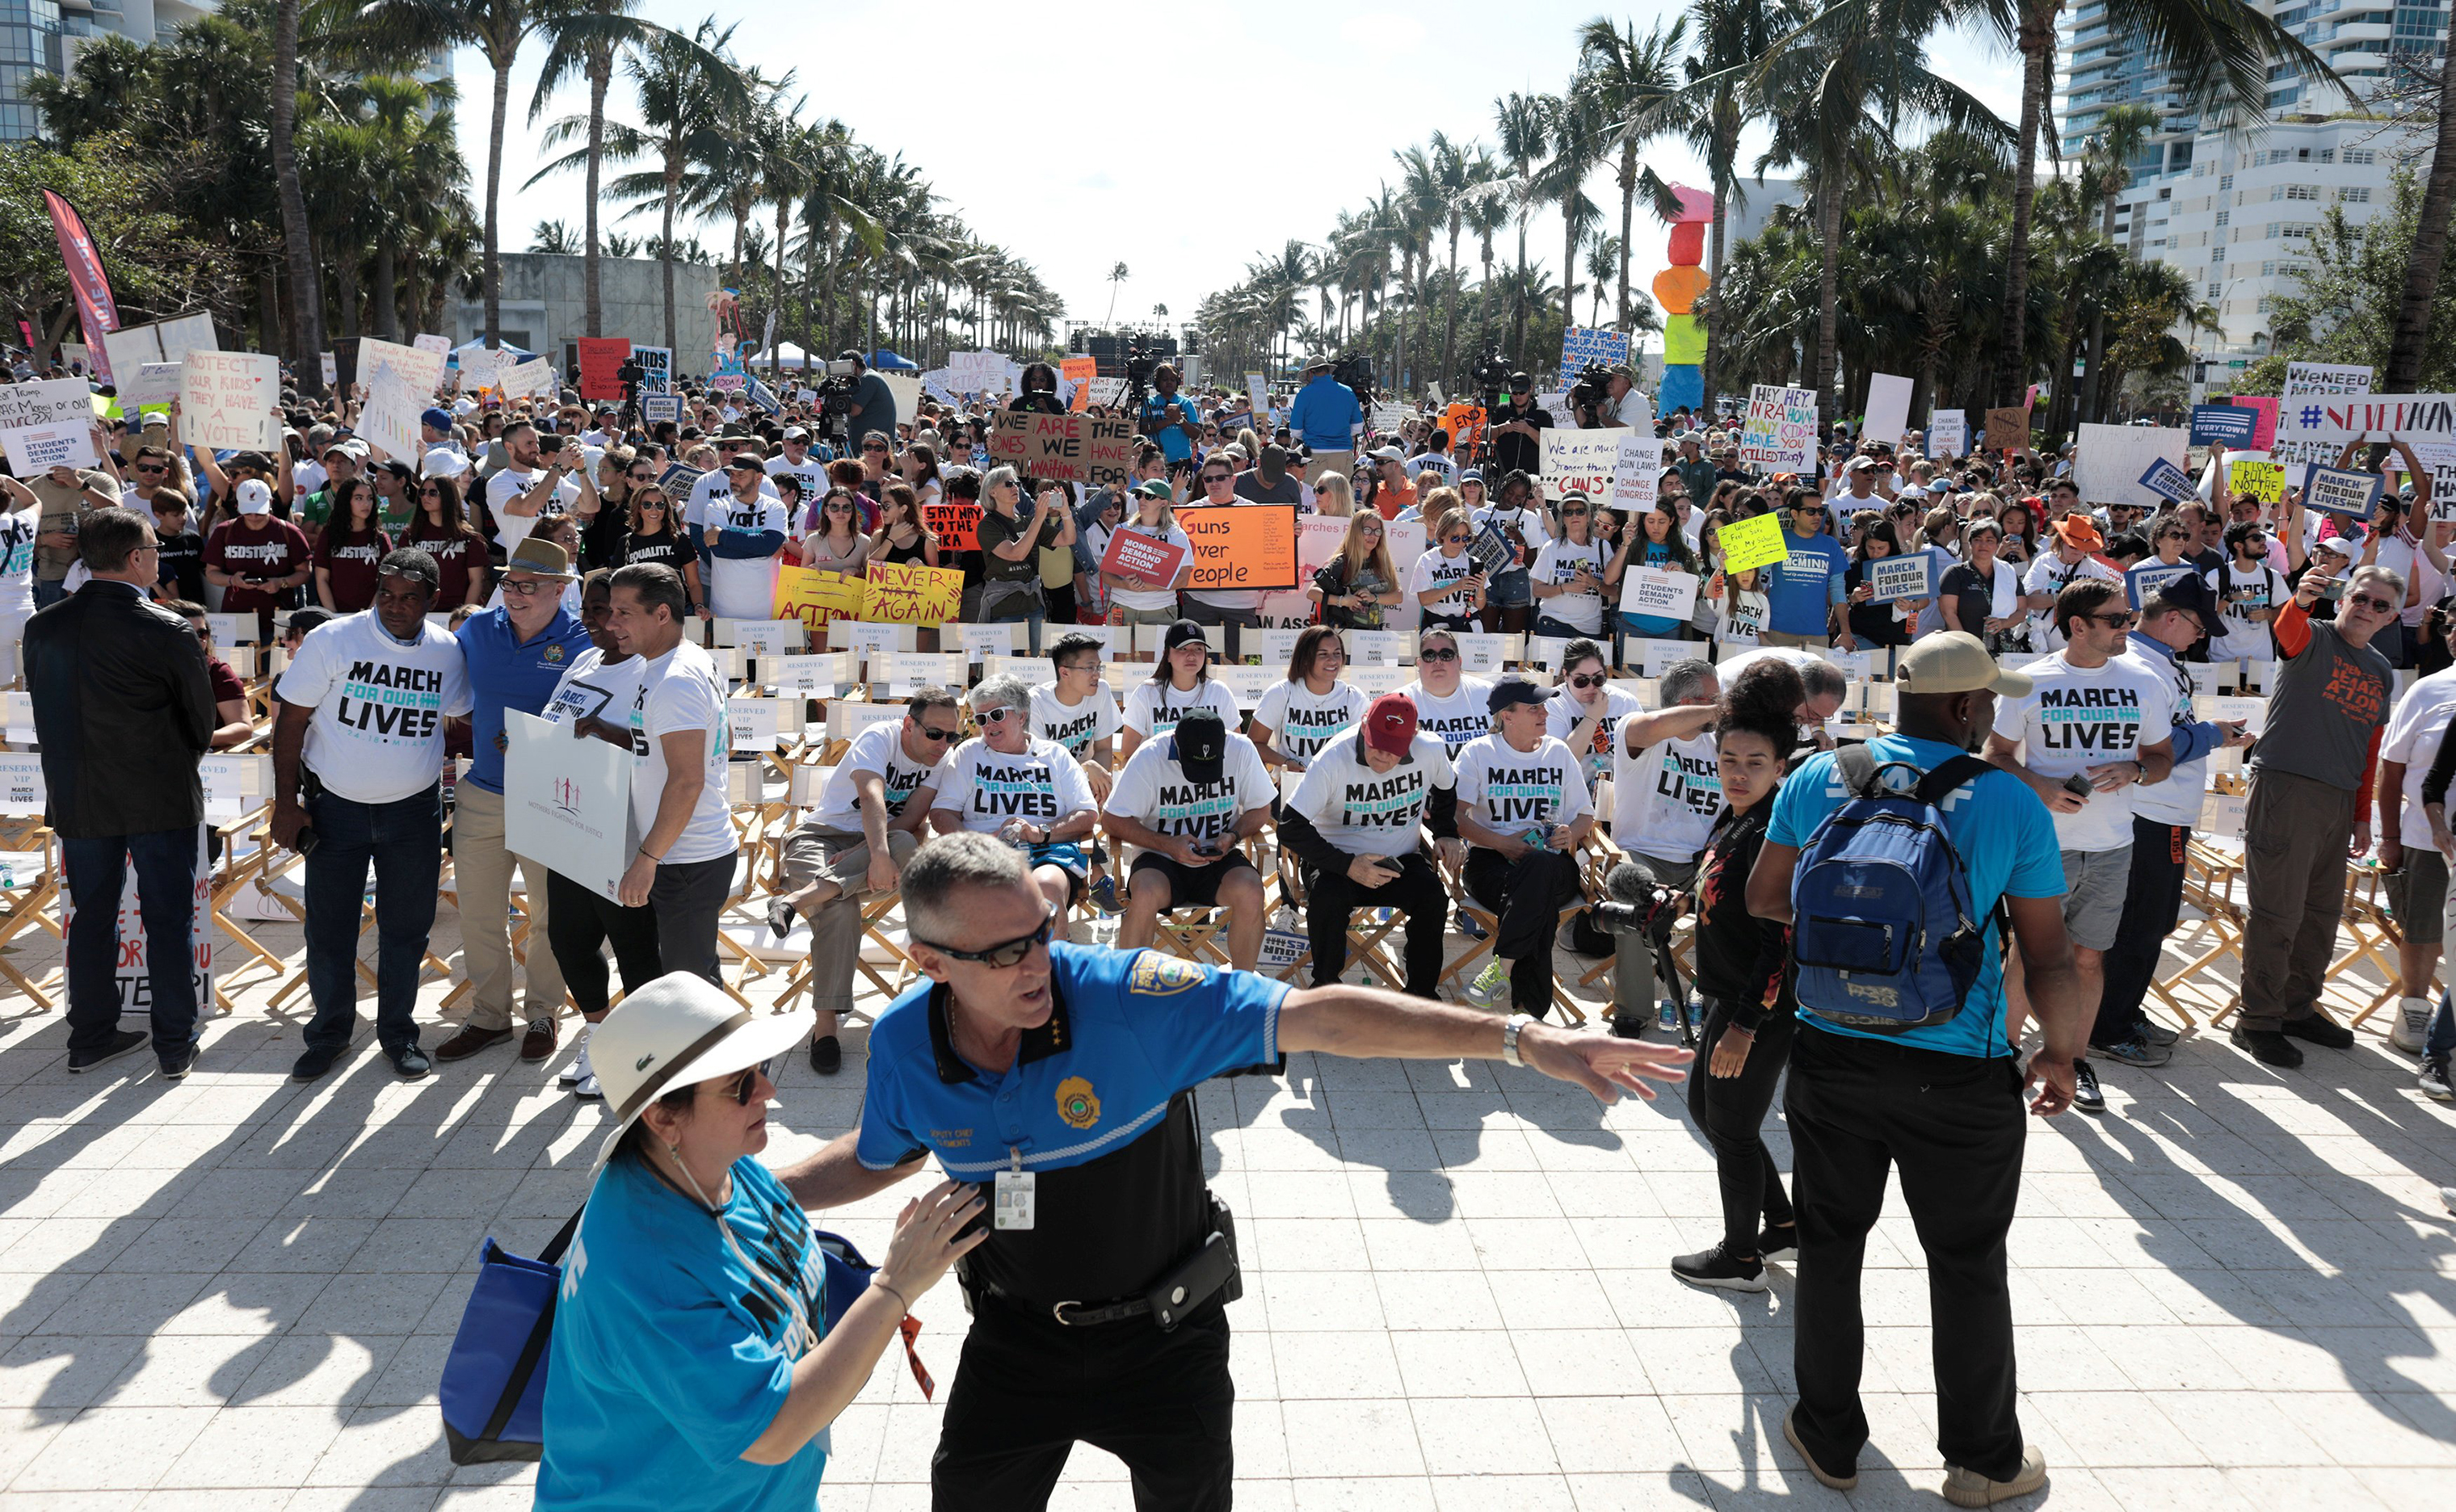 People stand while rallying in the street during the March For Our Lives demonstration, demanding stricter gun control laws, at the Miami Beach Senior High School.